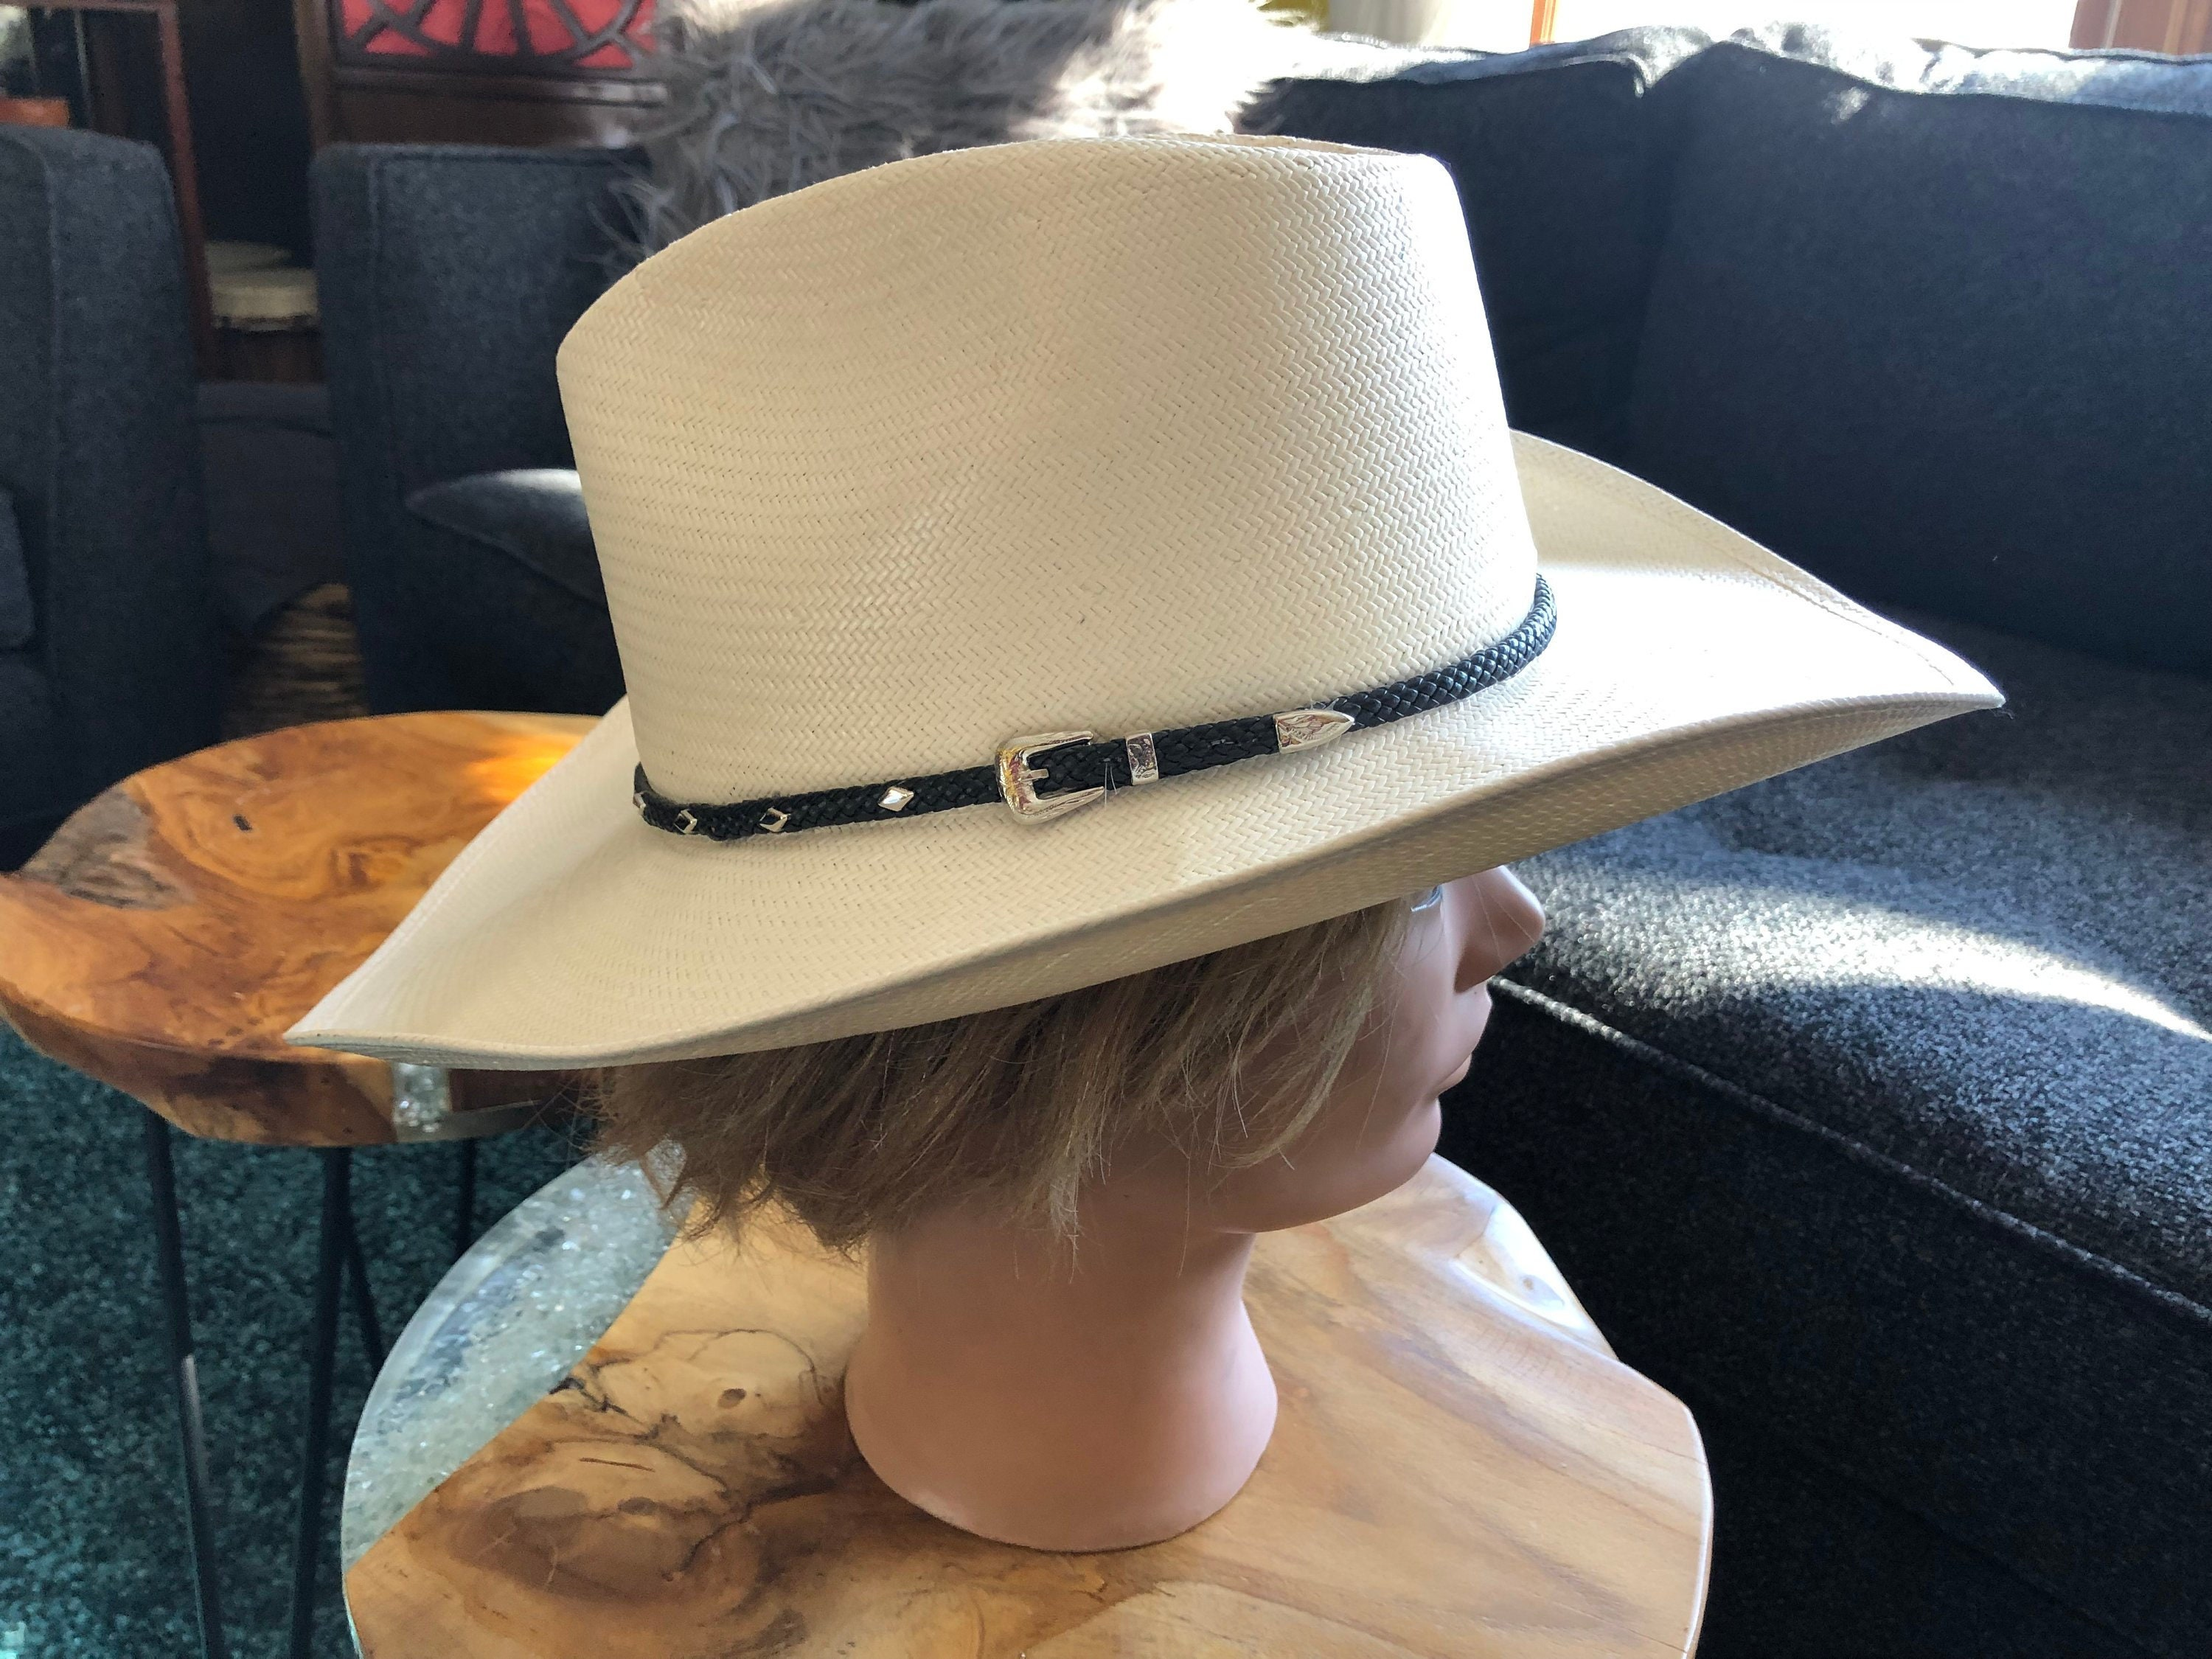 Vintage Stetson Cowboy Western Hat Authentic X's Genuine Shantung Panama  Made in USA Size 7 Cattleman Crown Straw Leather Band Silver Accent